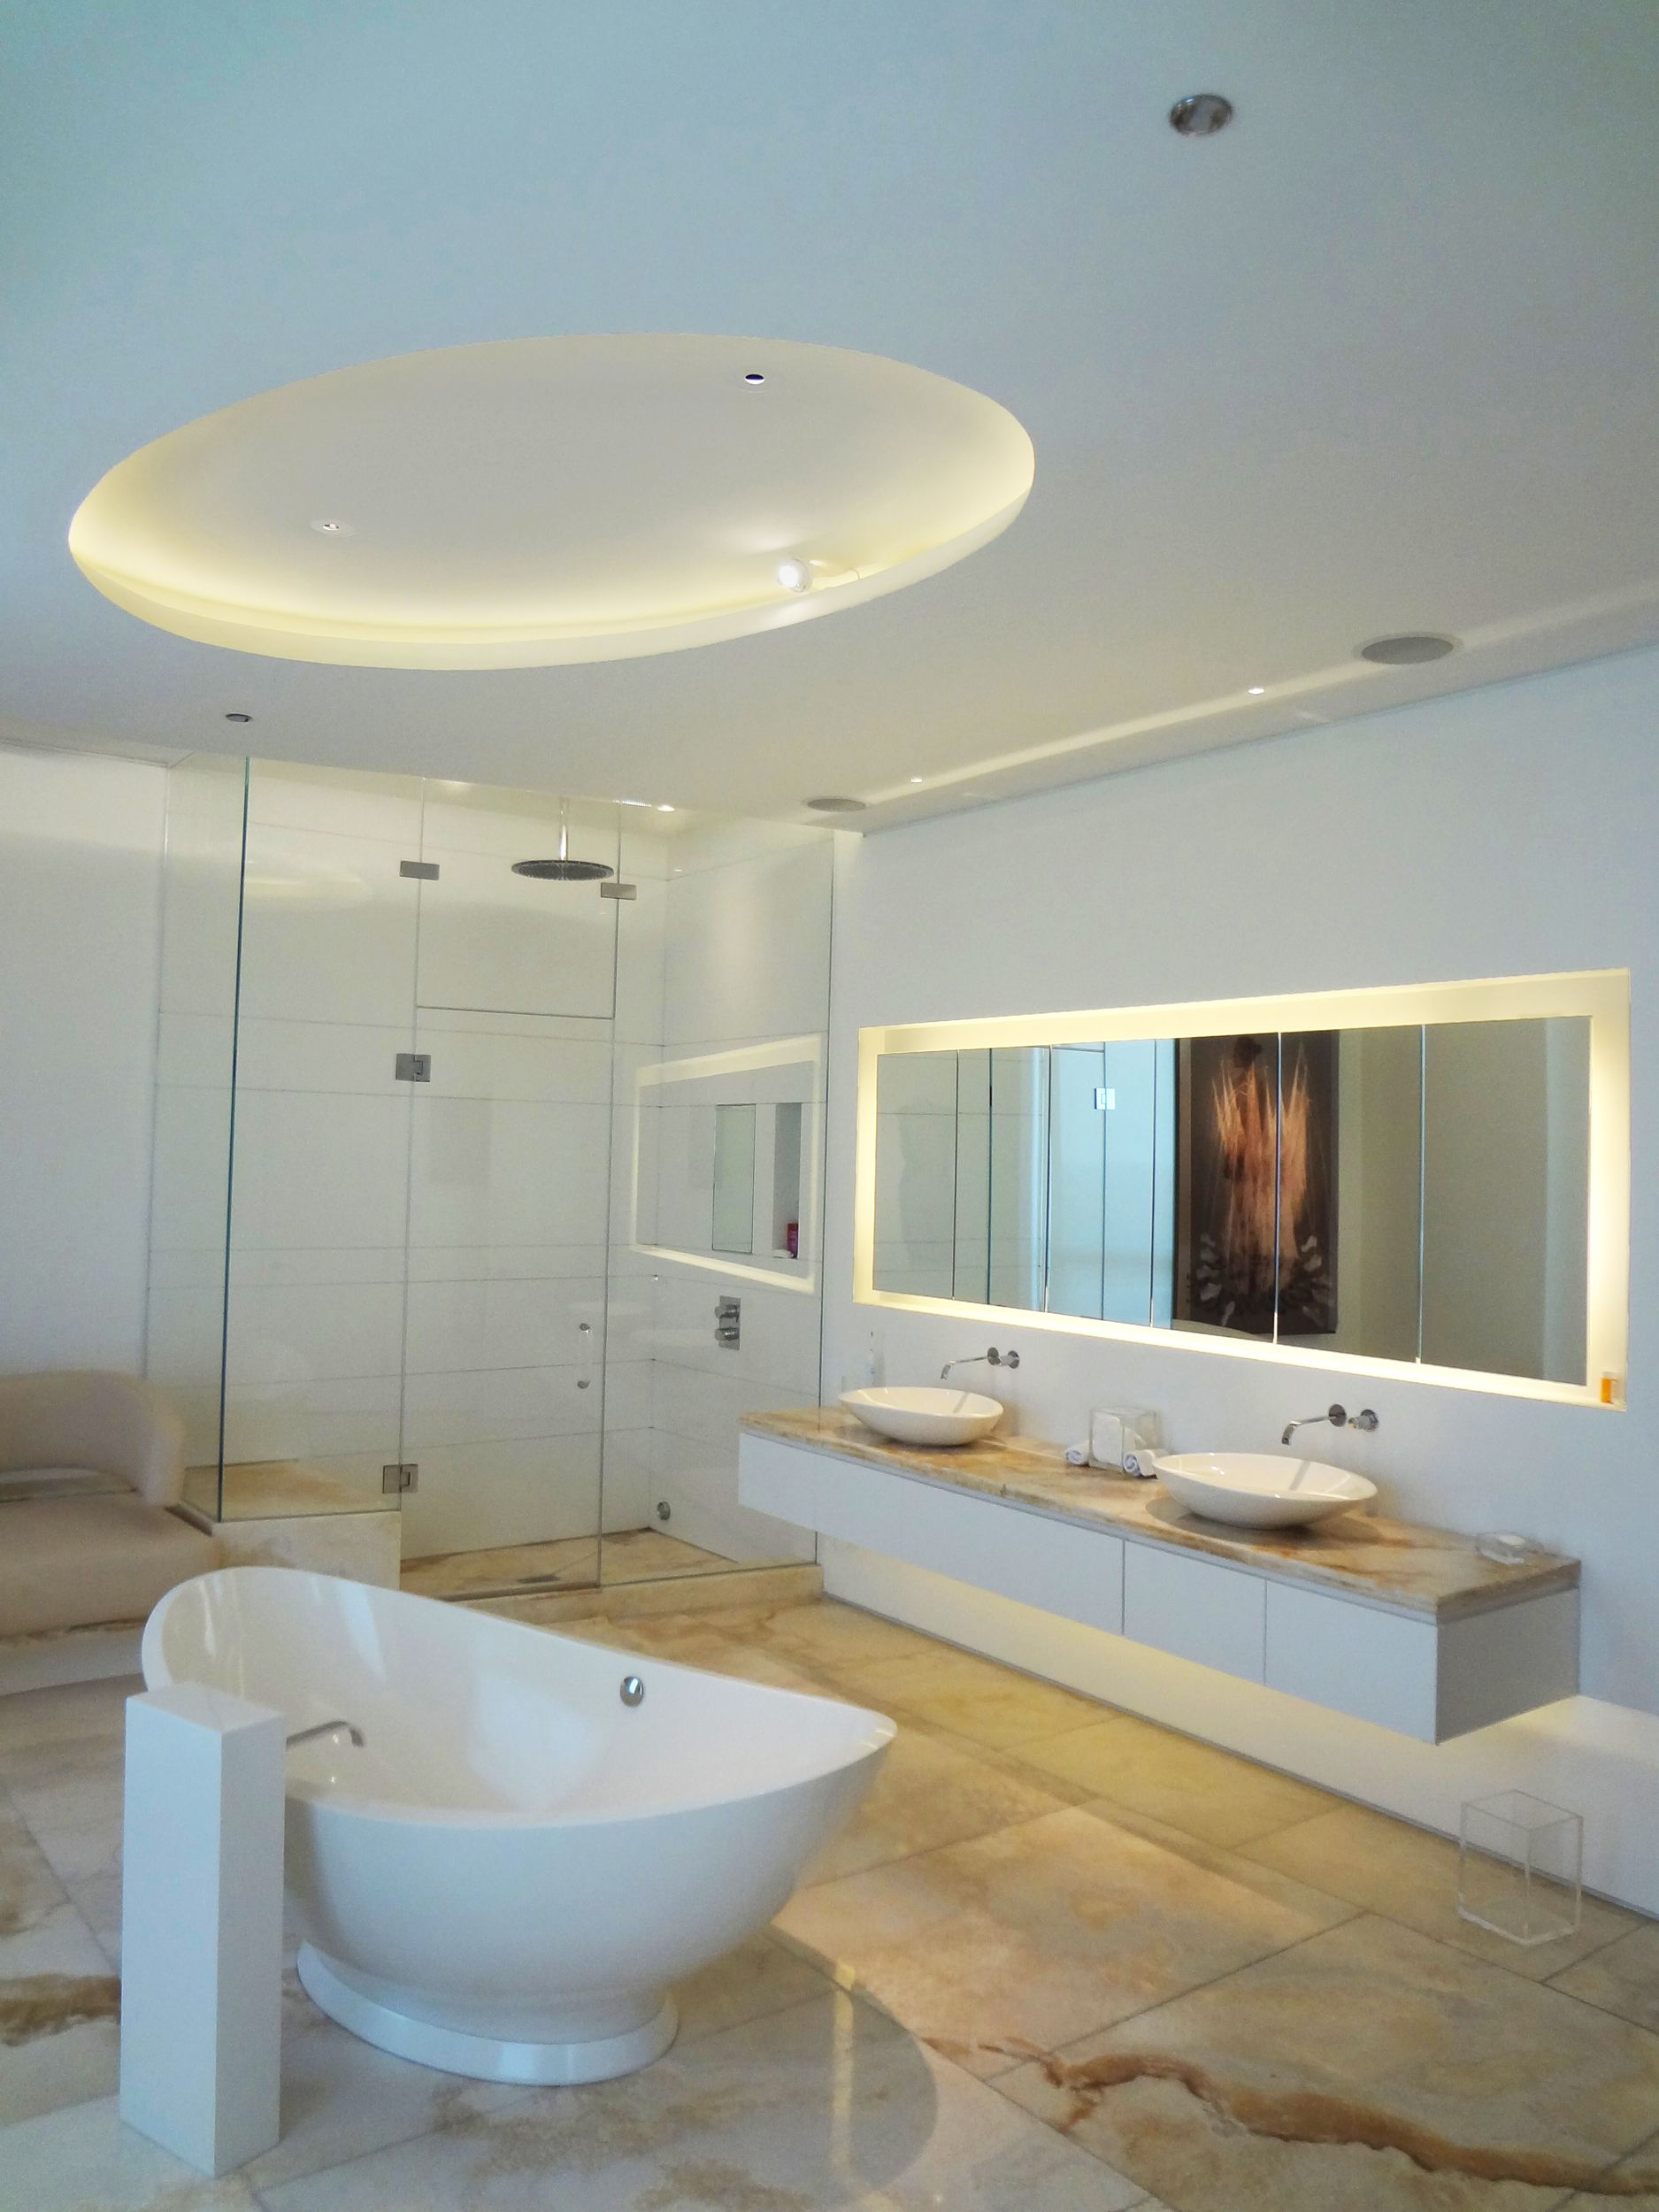 How to Pick the Best Bathroom Vanity Lighting | Bathroom Vanity